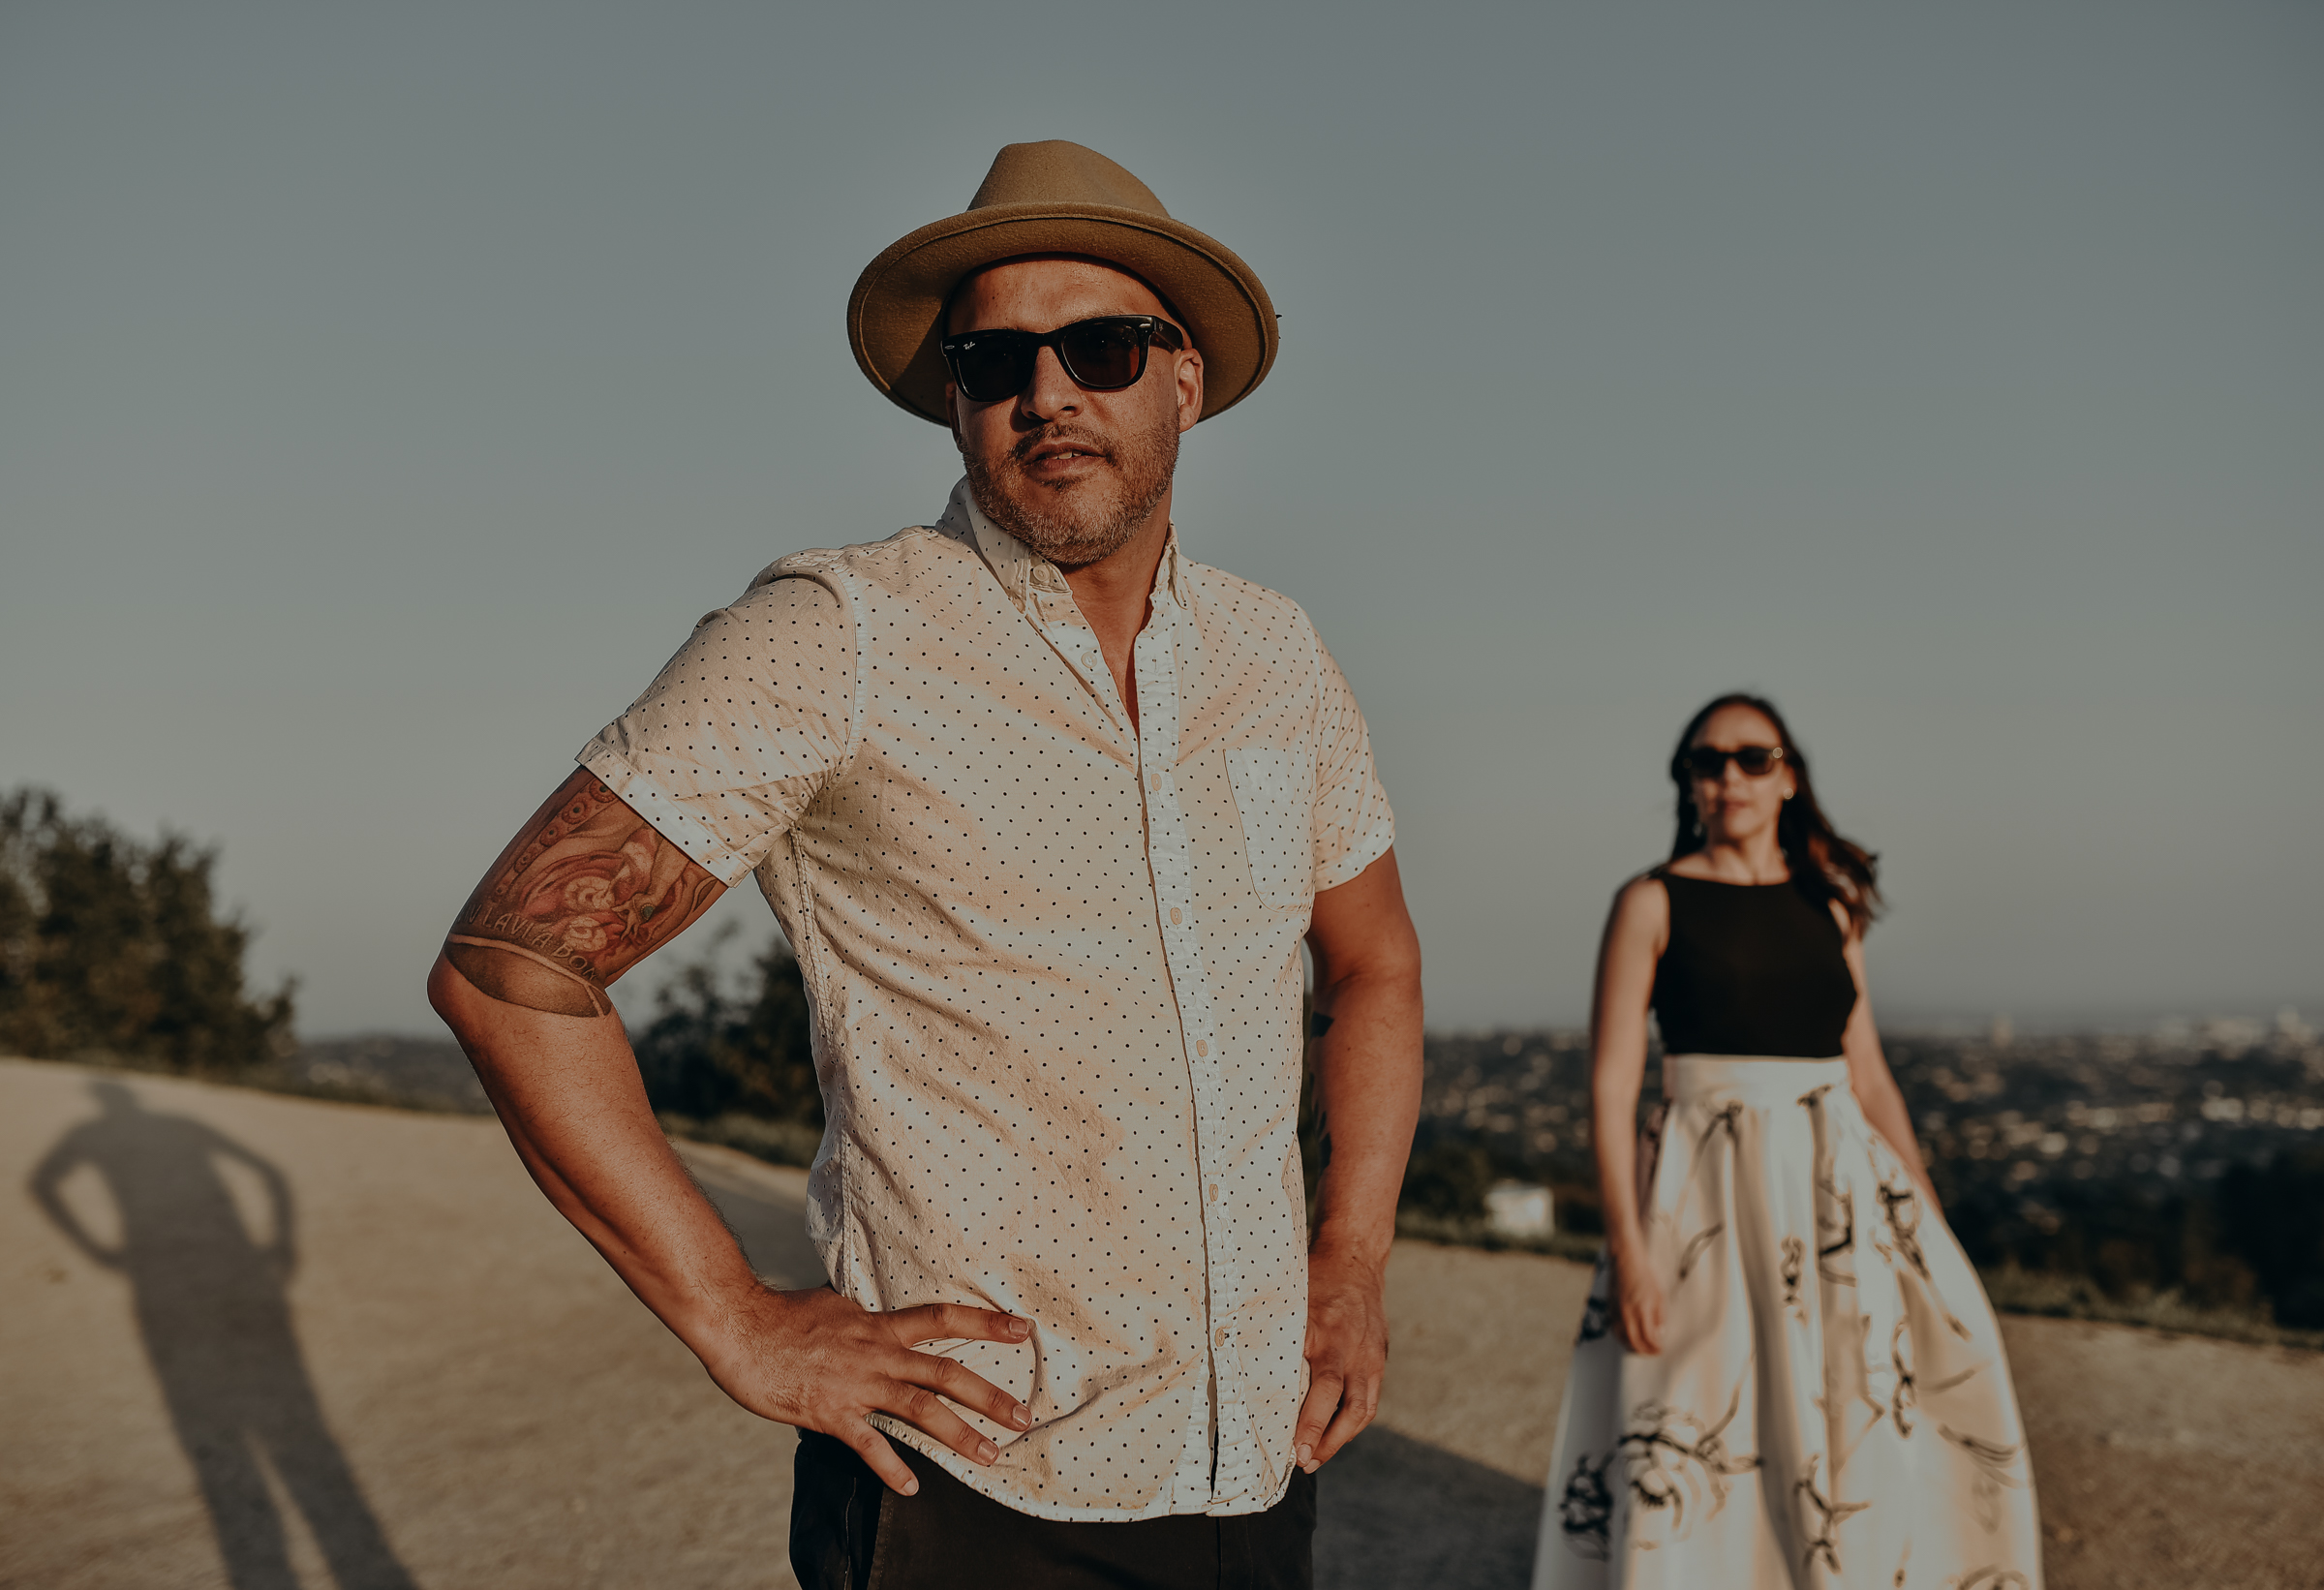 Los Angeles Wedding Photographers - Griffith Park Engagement - IsaiahAndTaylor.com-031.jpg